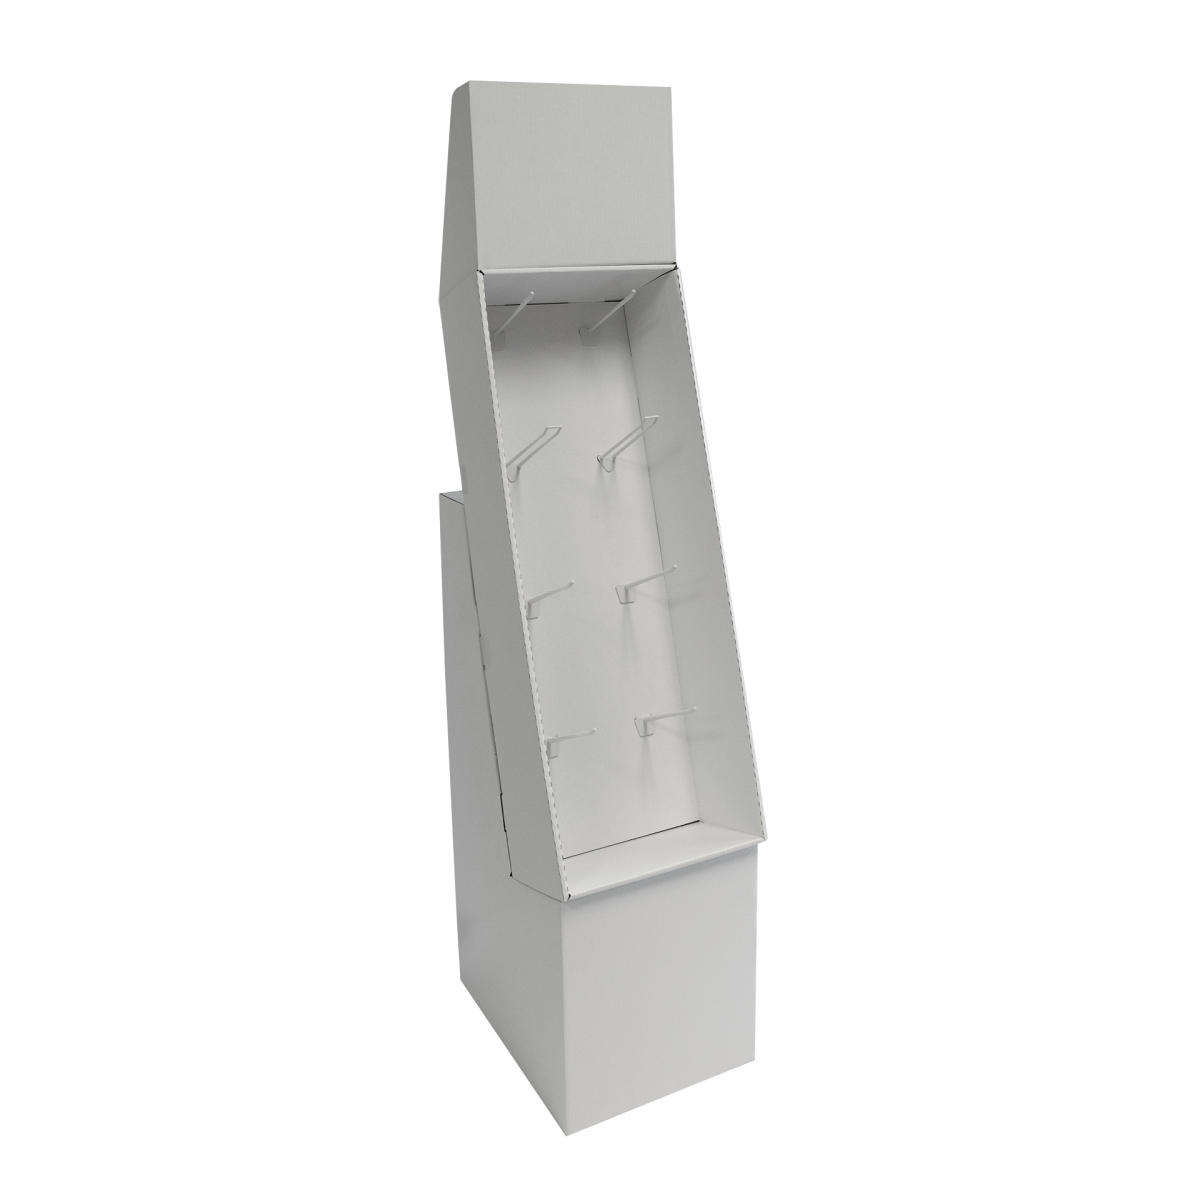 Cardboard floor peg display with header and 4 shelves, placed on a base - white